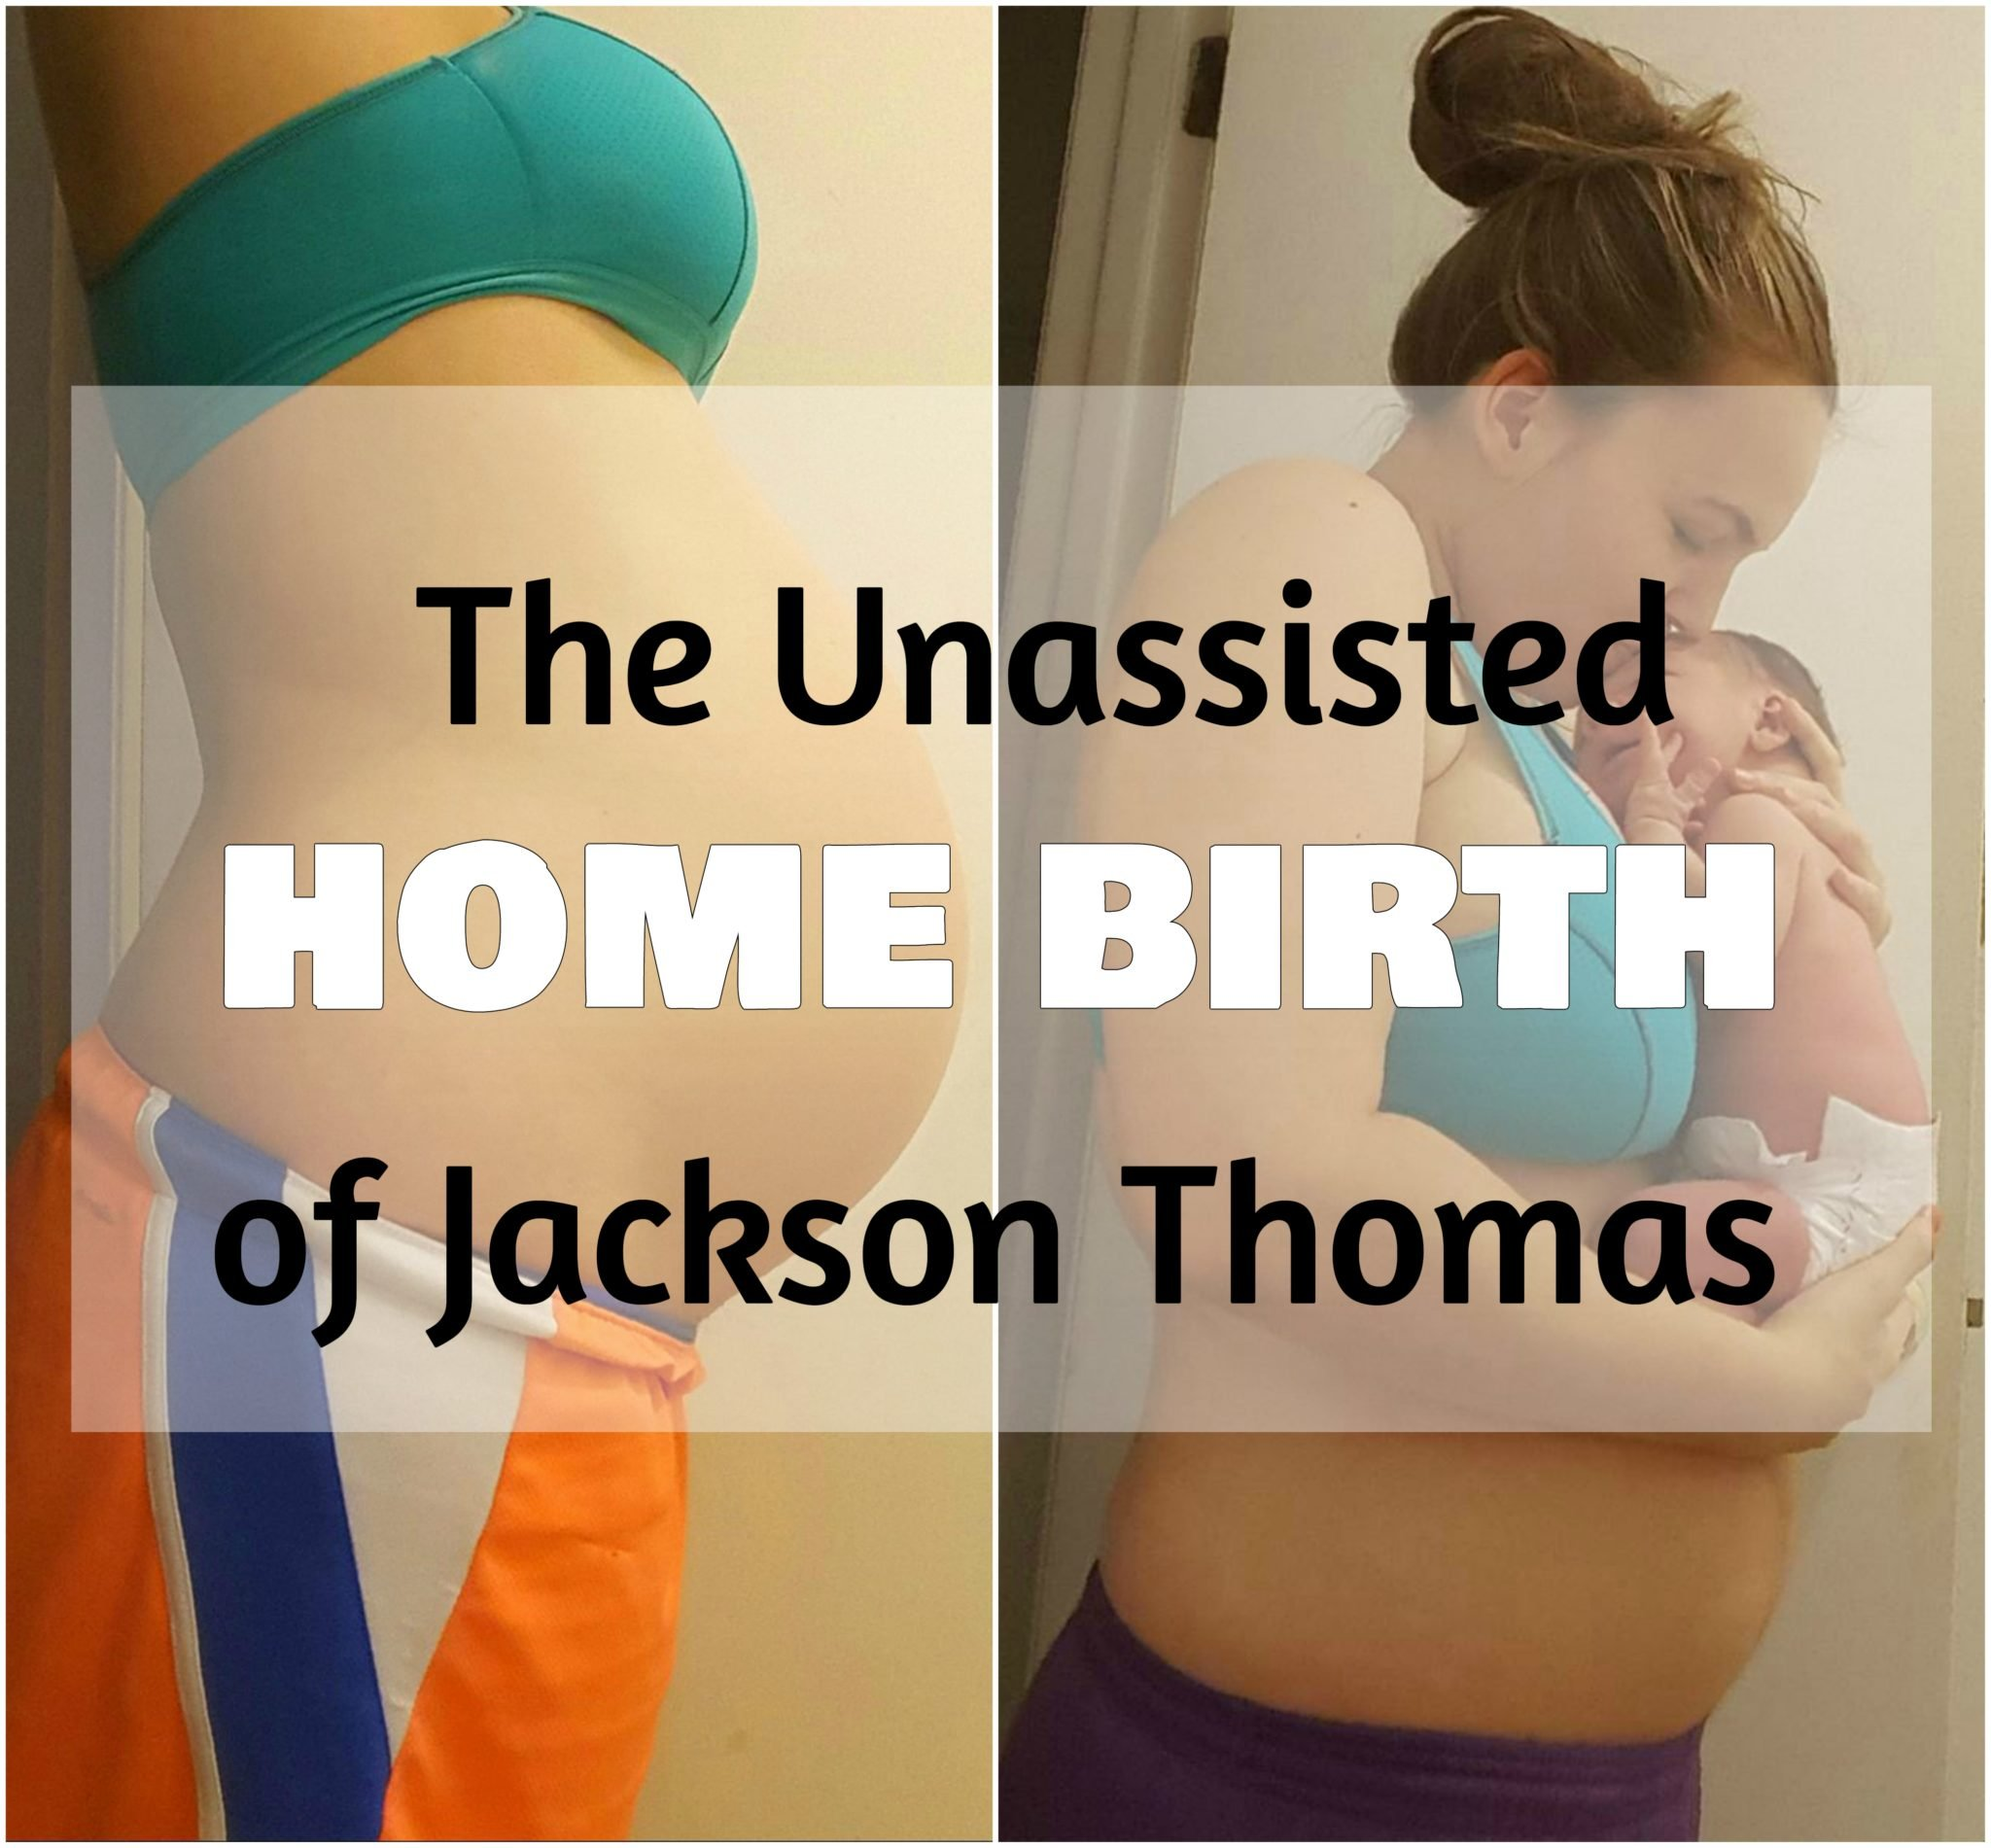 The Unassisted Home Birth of Jackson Thomas